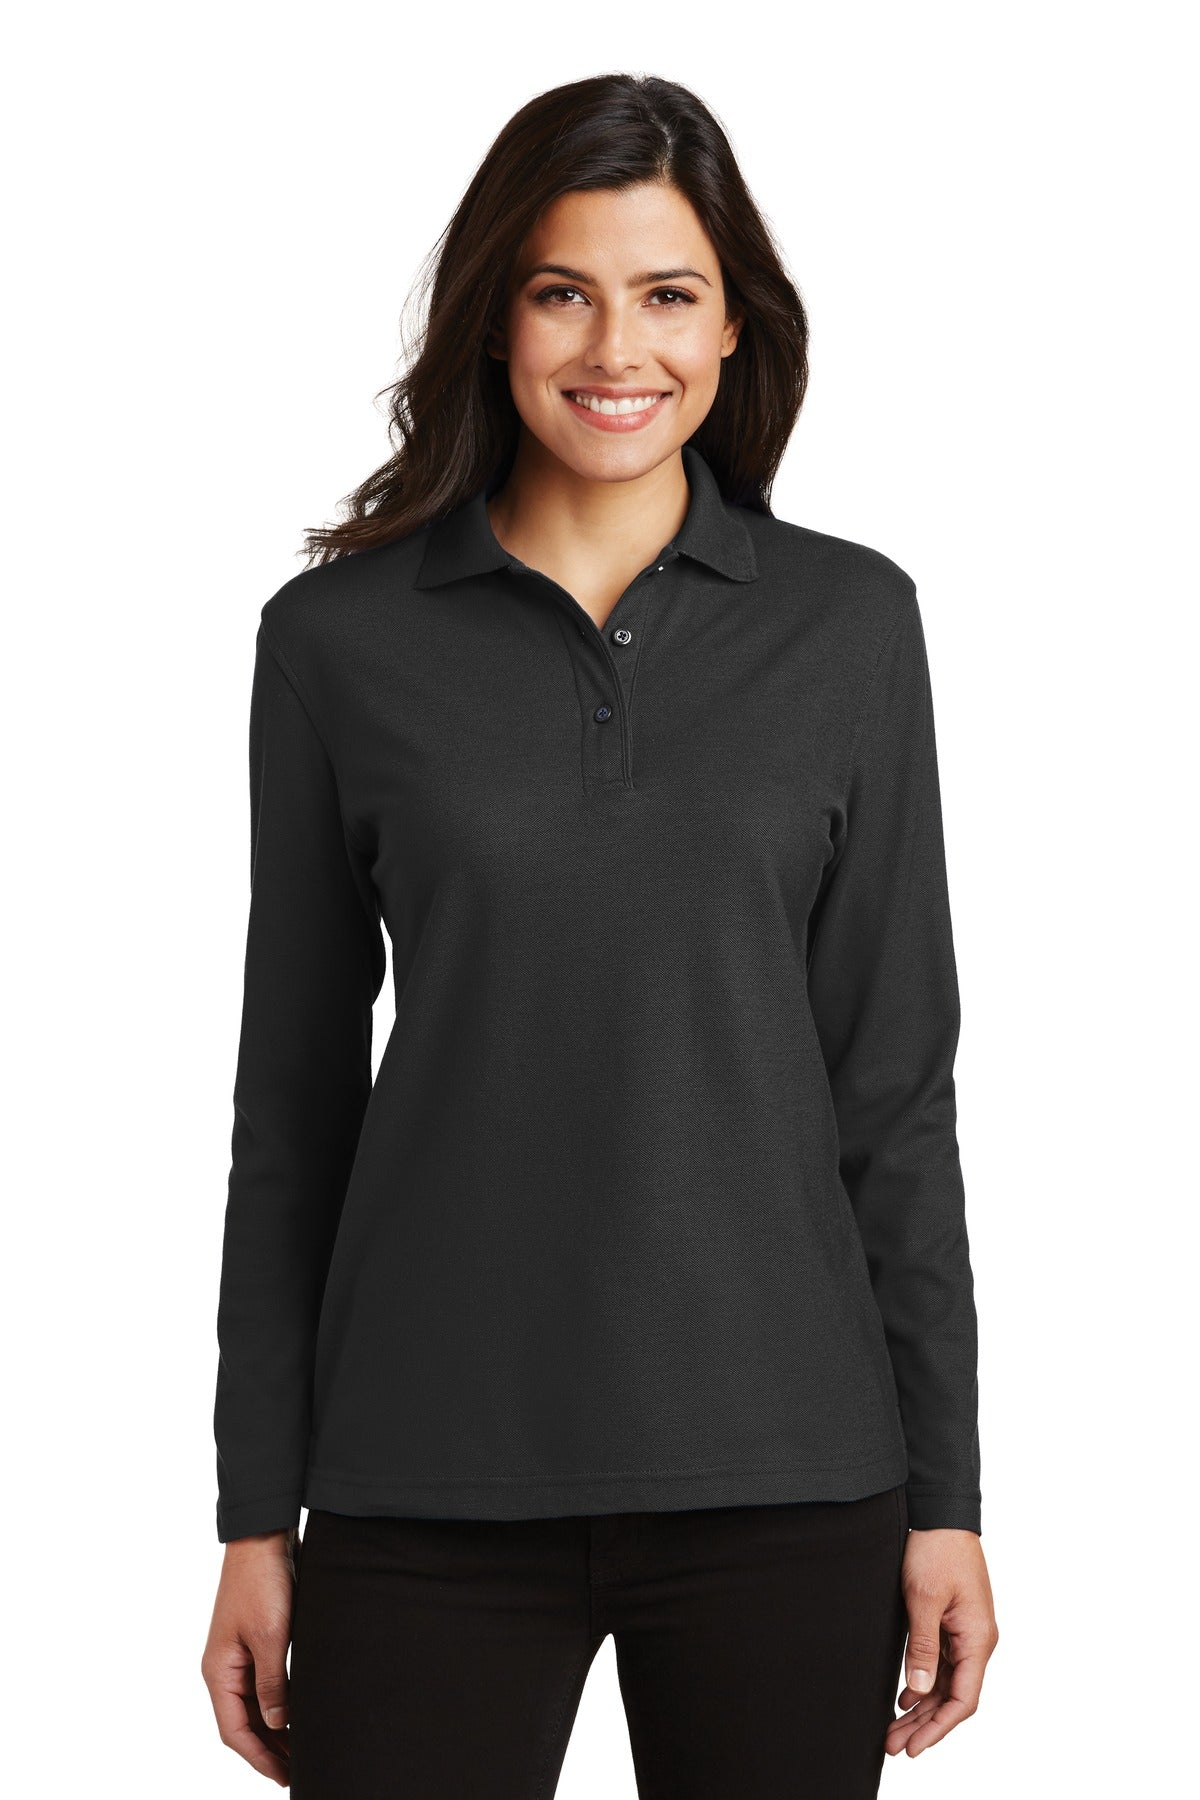 Royal / Classic Navy Port Authority Ladies Short Sleeve Easy Care Shirt.